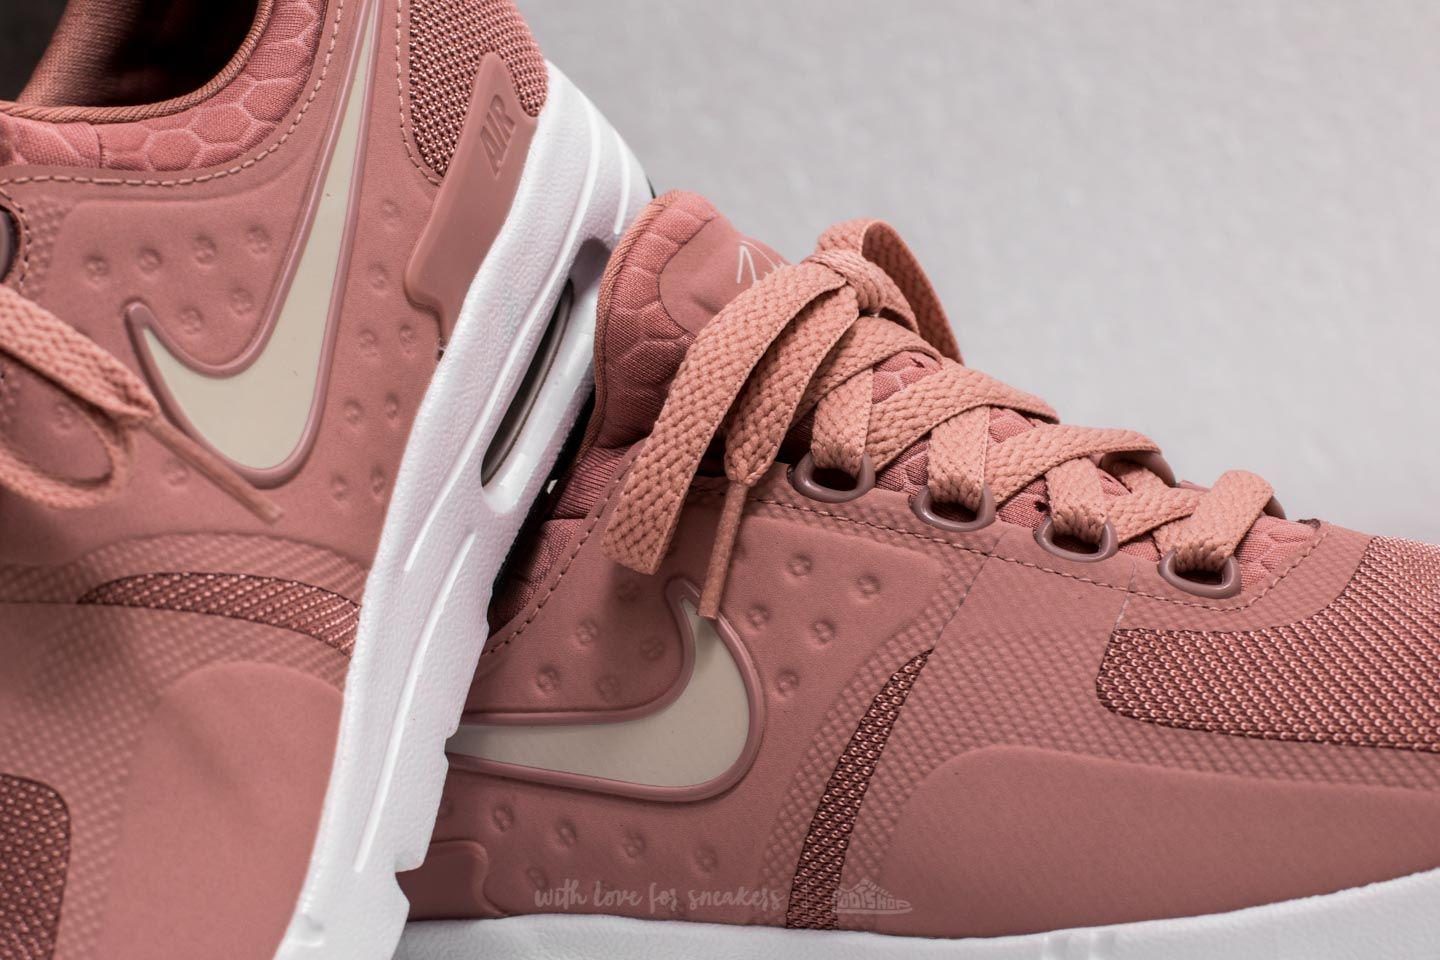 Lyst - Nike Air Max Zero W Particle Pink  Light Bone-black in Pink 6f1ee70a3